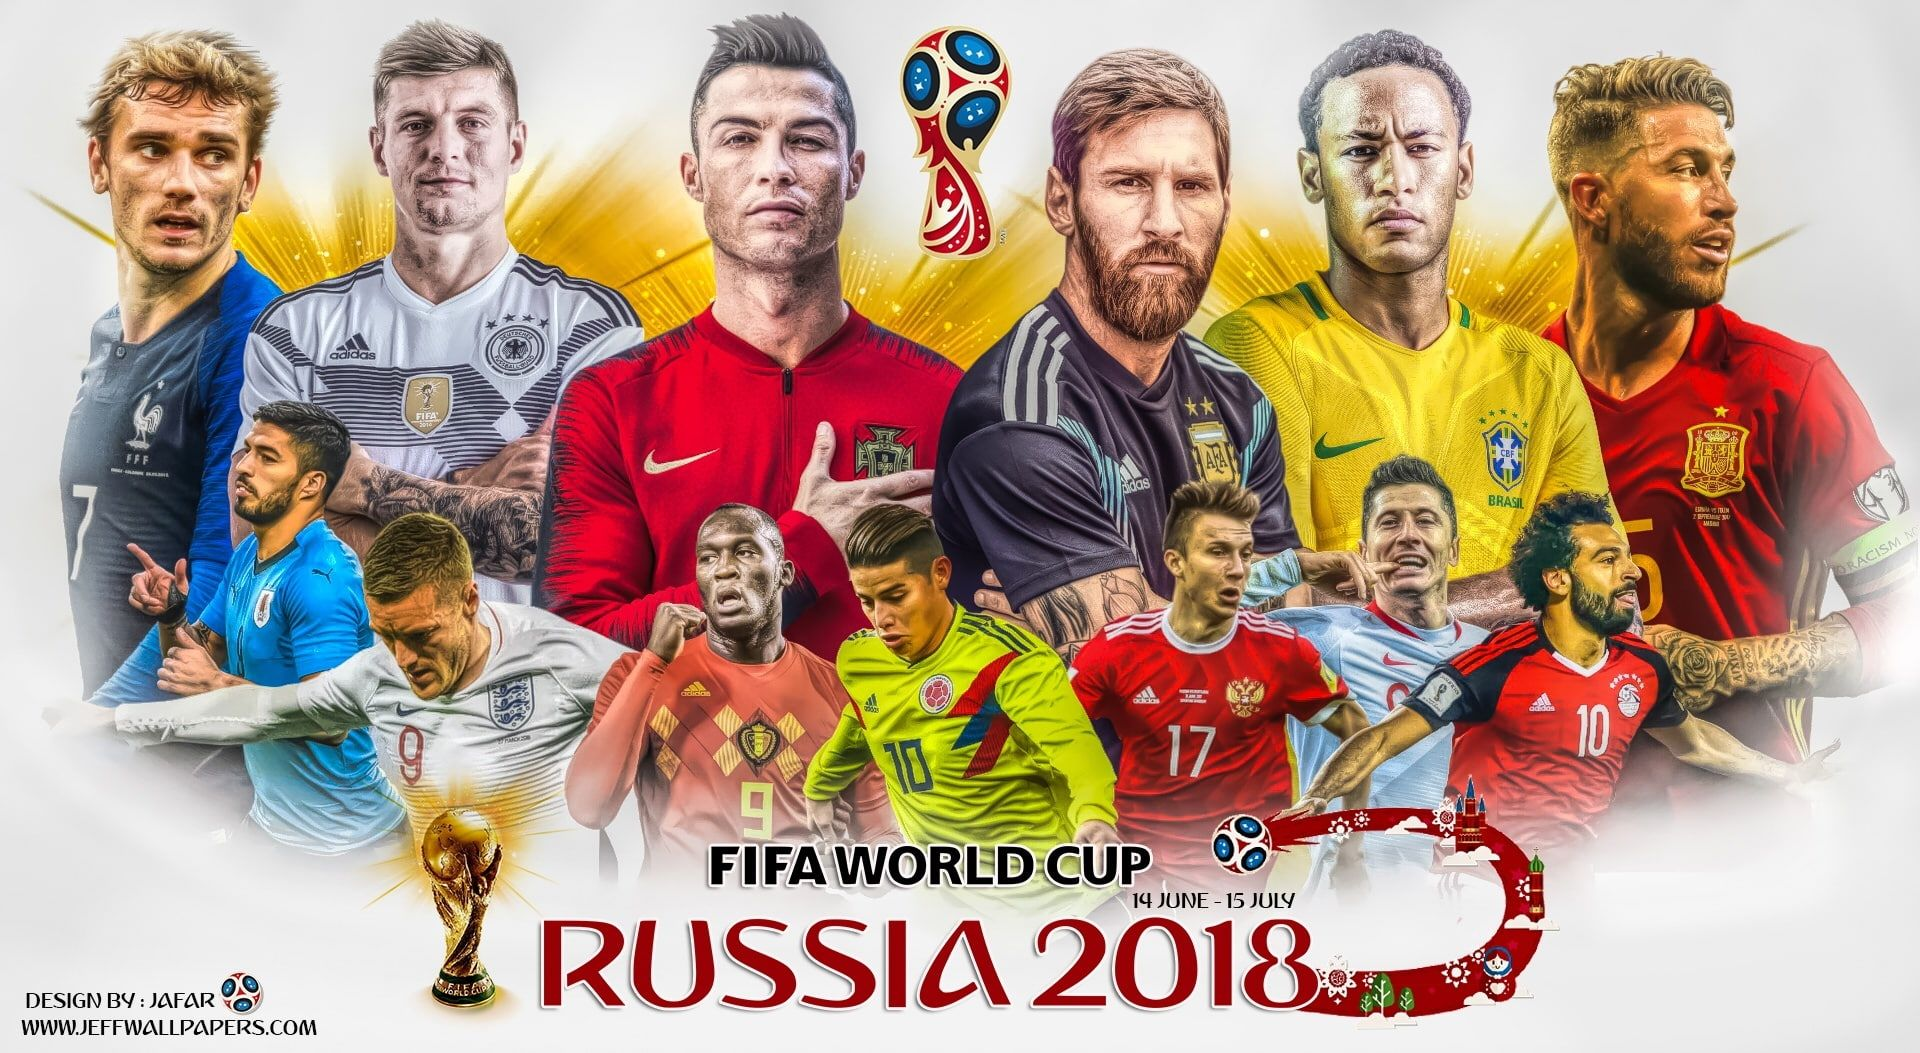 World Cup 2018 Fifa World Cup Russia 2018 Poster Sports Football Fifa Lionel Messi Real Madrid Cristiano Ron In 2020 World Cup 2018 World Cup World Cup Russia 2018